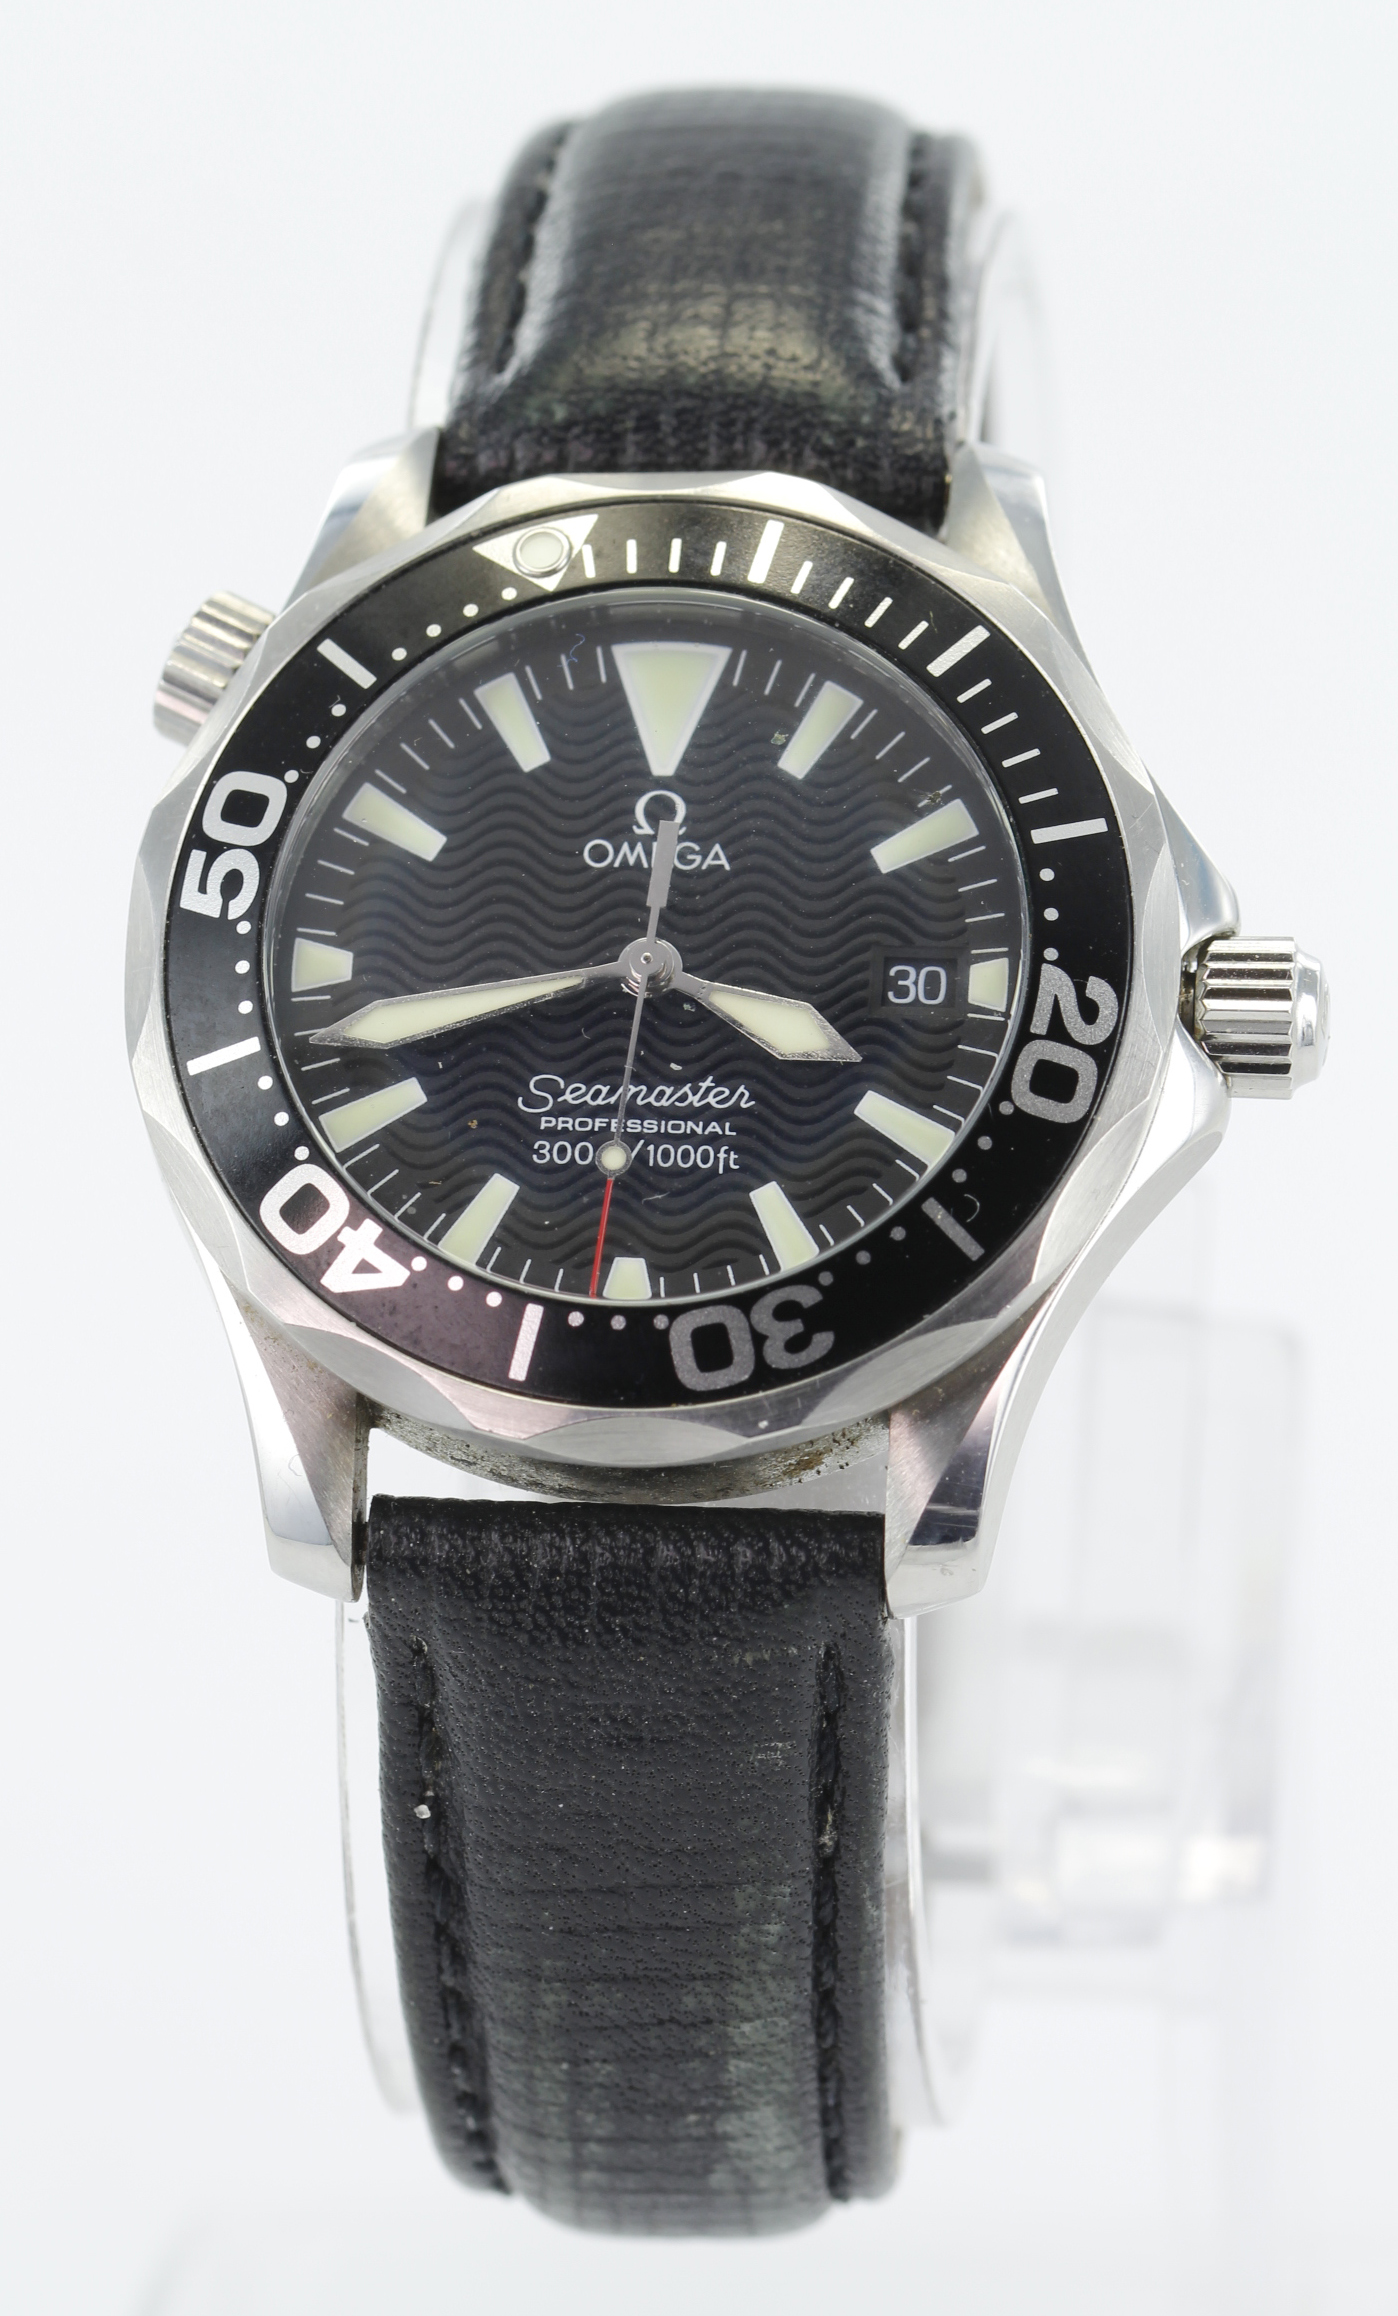 Omega, Seamaster, Ref. 196 1641, Stainless steel cased quartz wristwatch. On an Omega leather strap,